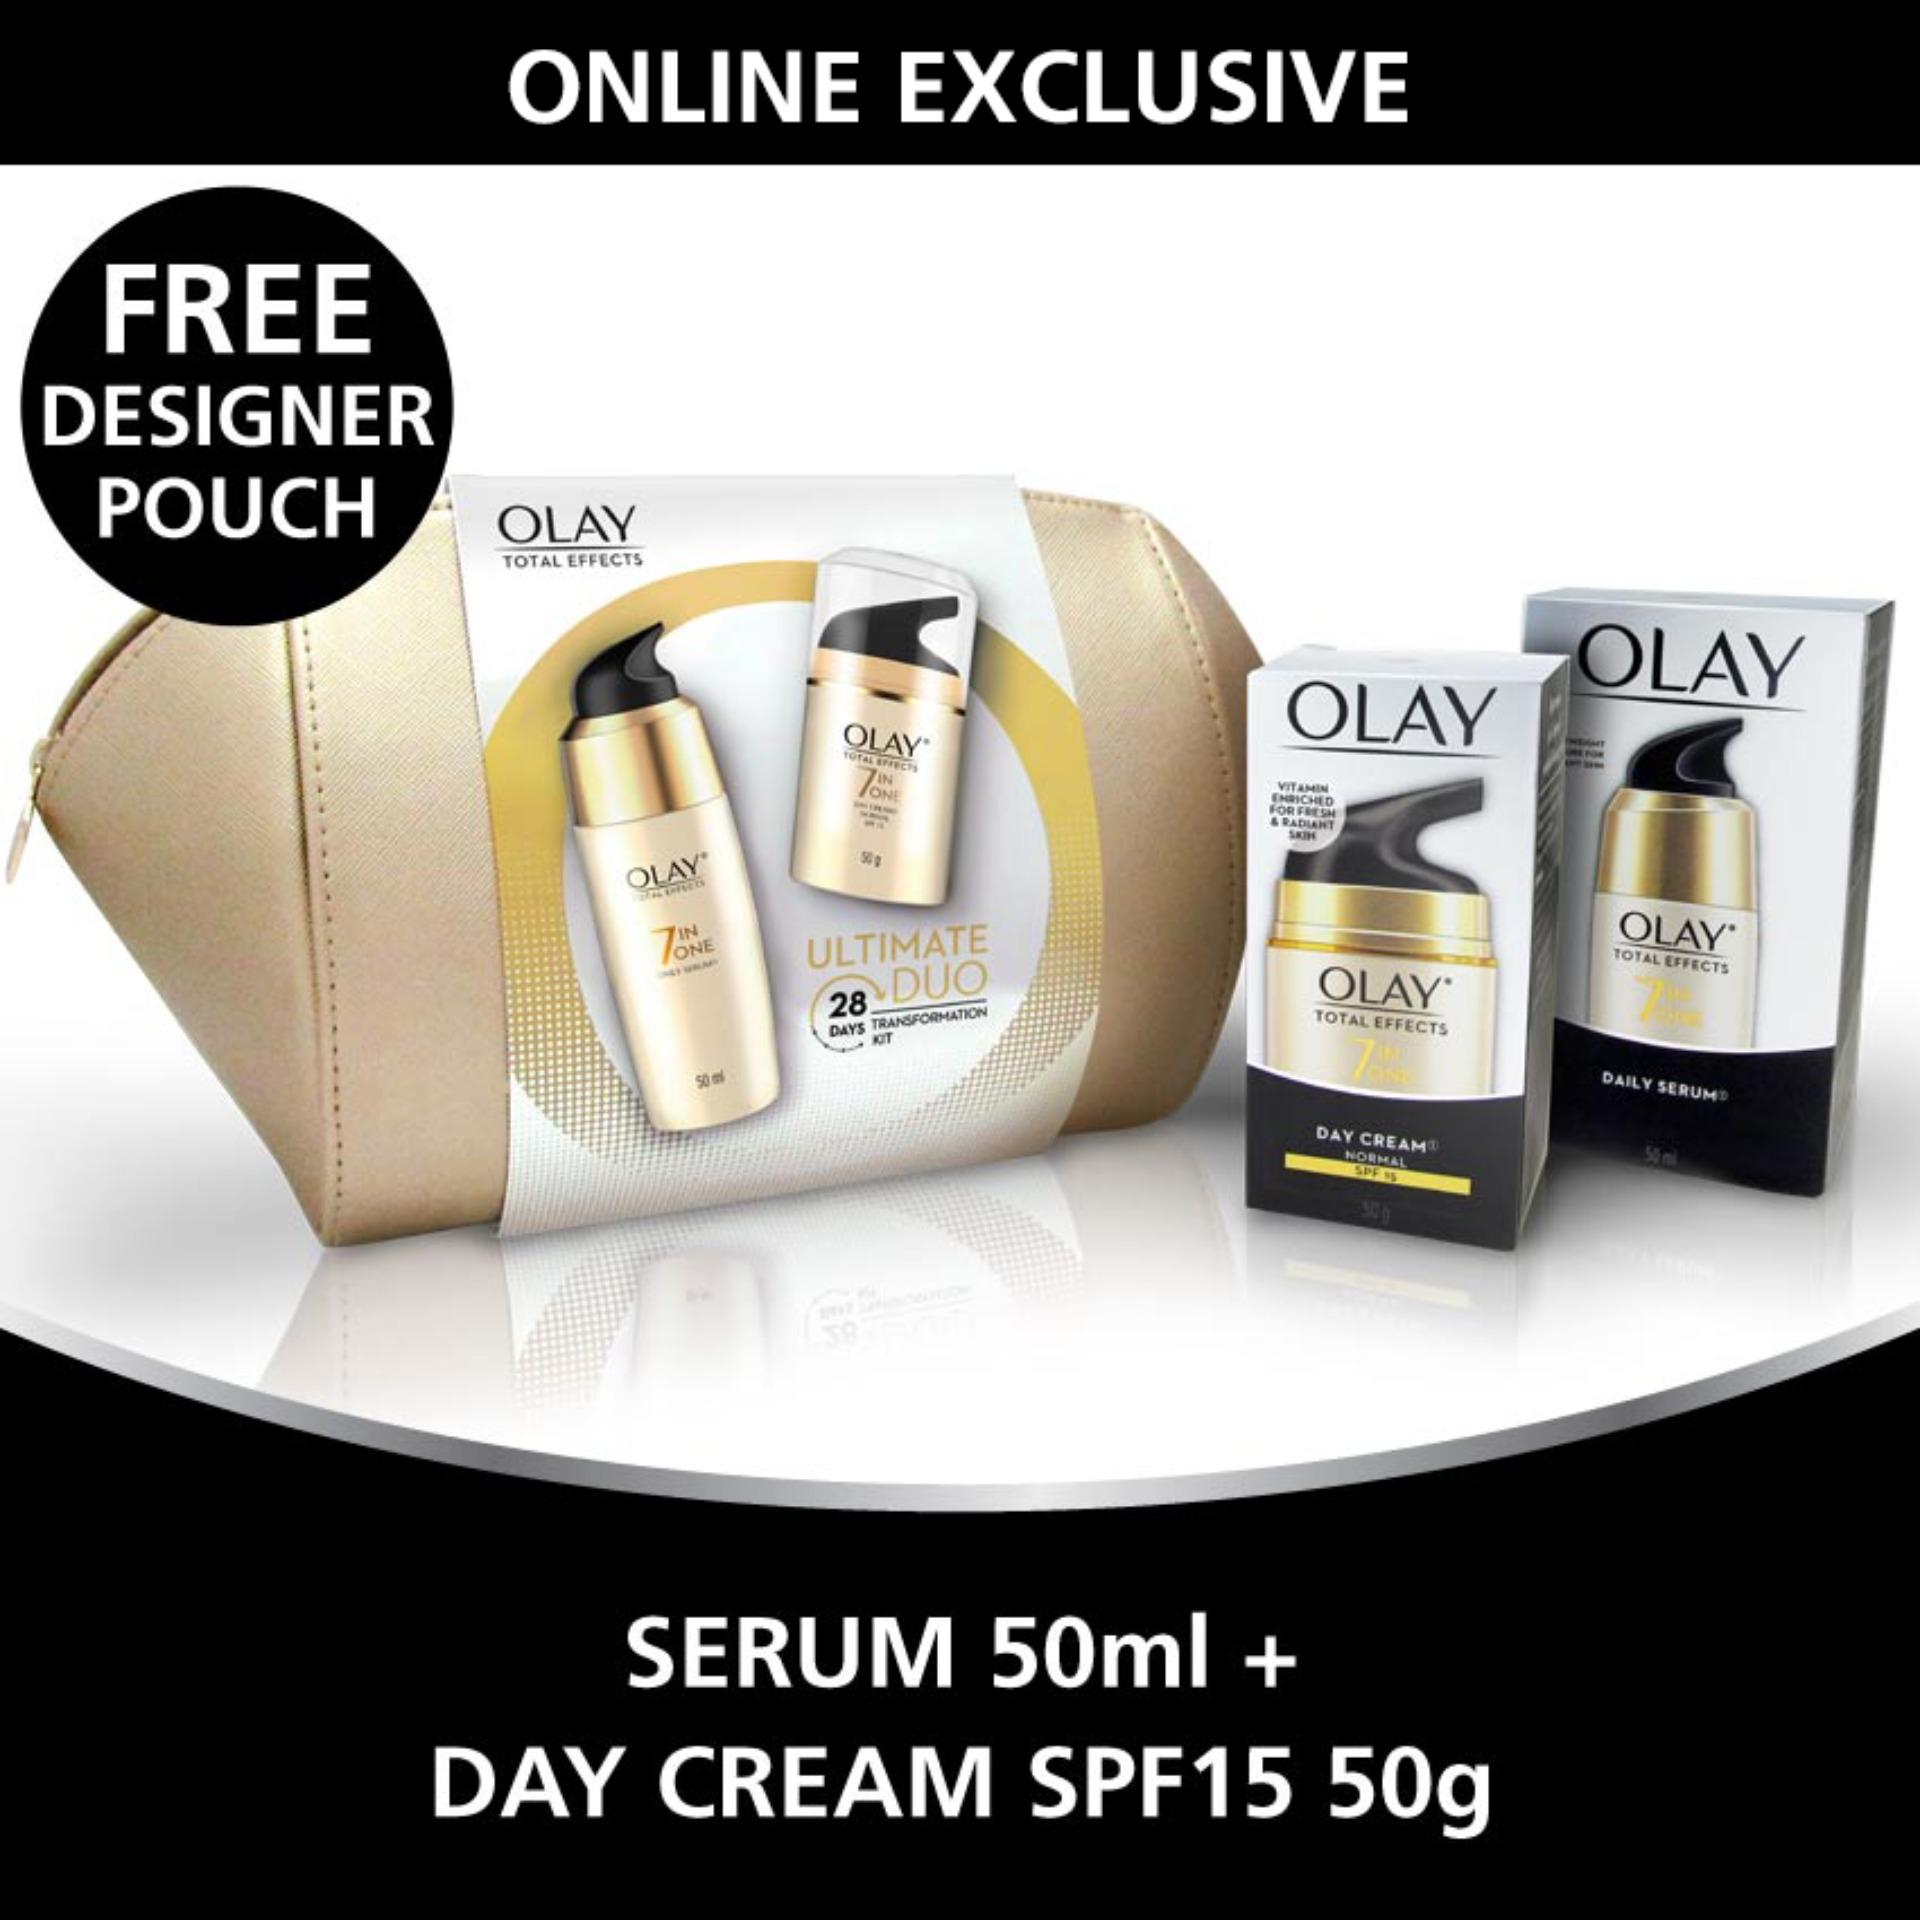 Olay Philippines Price List Anti Aging Cream Soap Total Effects 7in1 Ageing Serum 50ml Duo 28 Day Kit Save P499